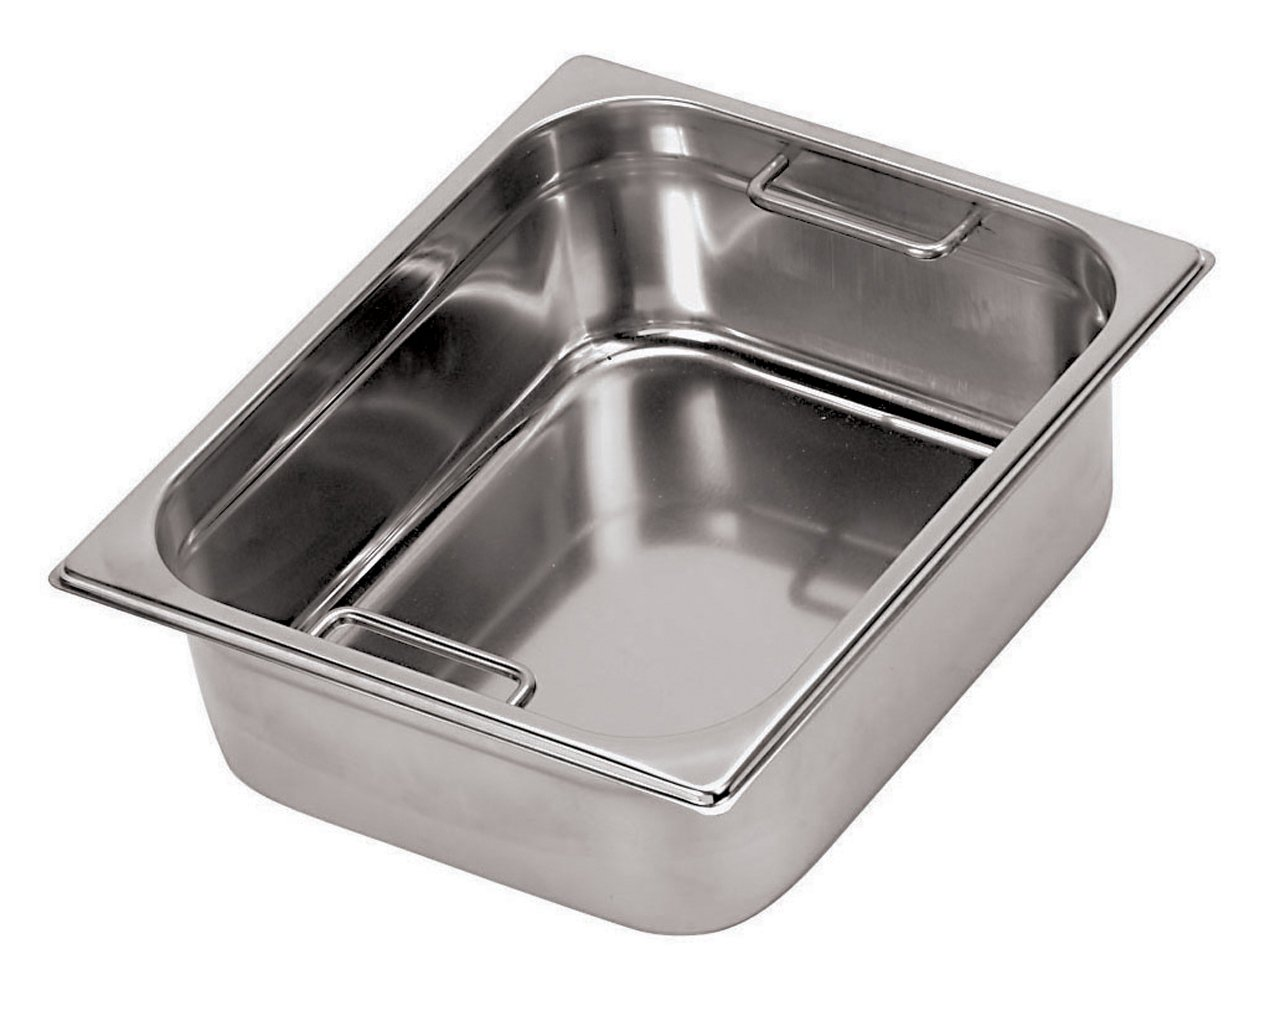 Paderno World Cuisine 12 3/4 inches by 6 1/4 inches Stainless-steel Hotel Pan with Internal Handles - 1/4 (depth: 6 inches)